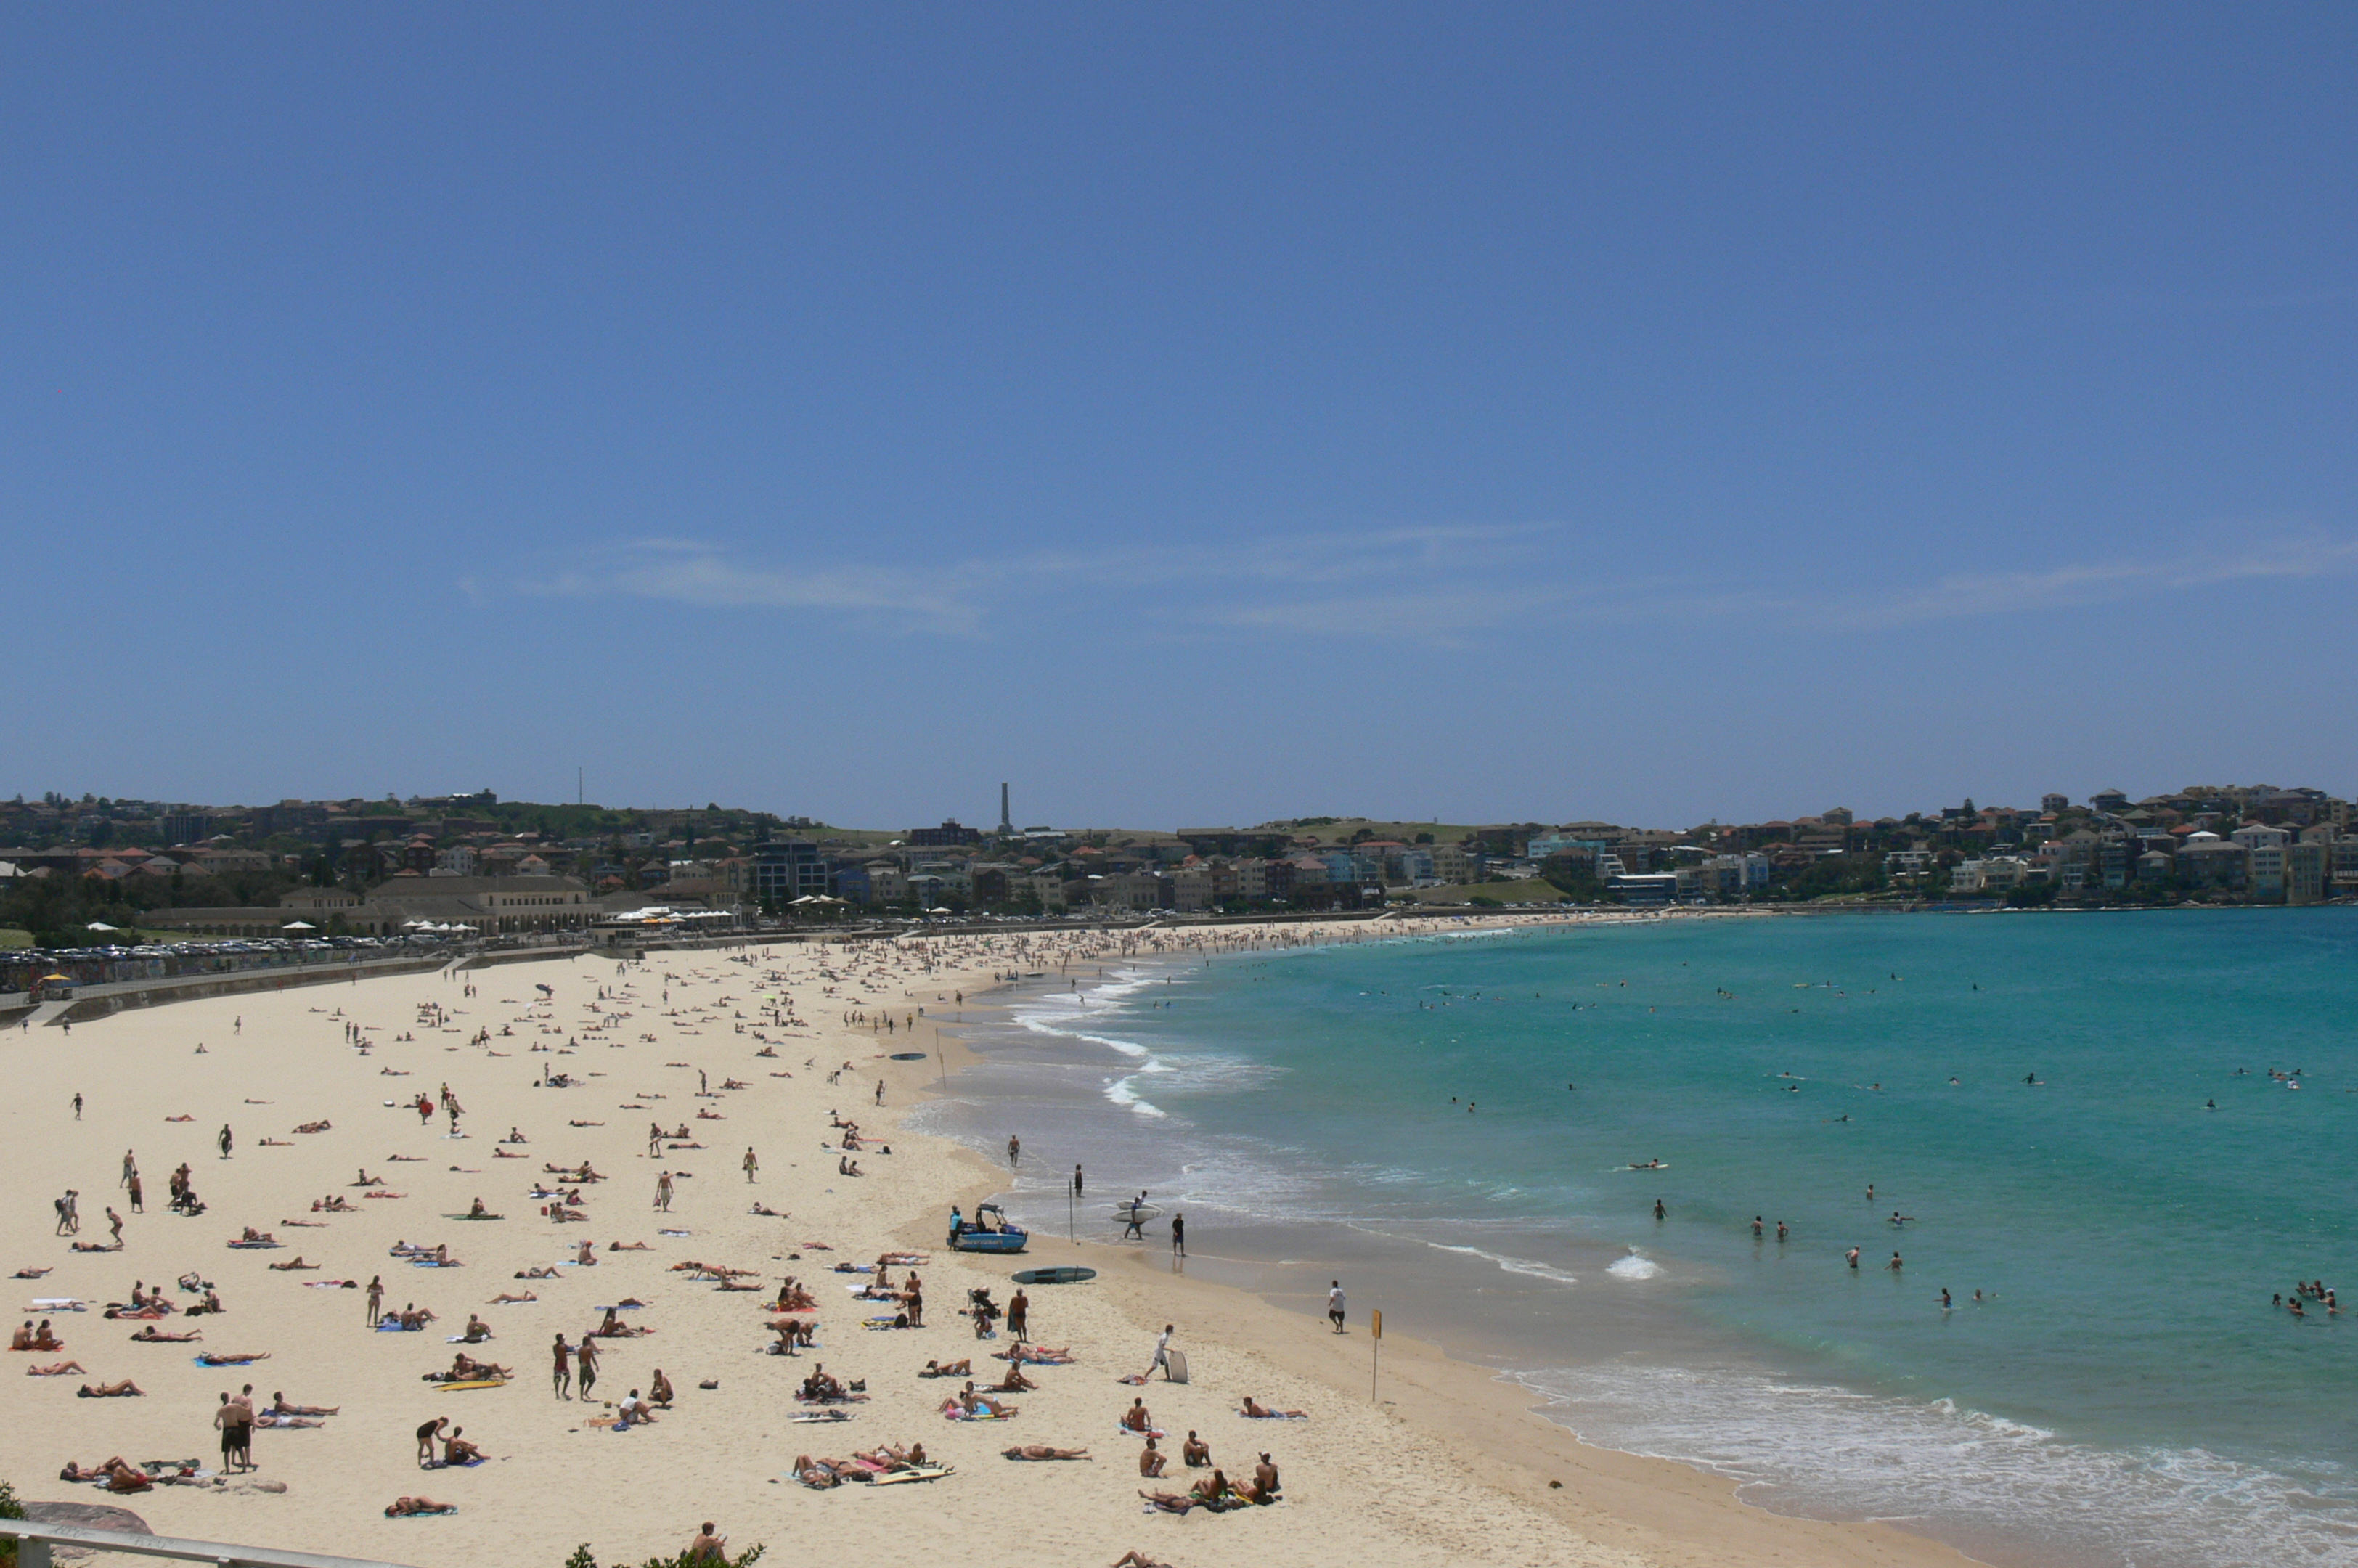 Bondi Beach By Rabs003 (Own work) [CC-BY-SA-3.0 (https://creativecommons.org/licenses/by-sa/3.0) or GFDL (https://www.gnu.org/copyleft/fdl.html)], via Wikimedia Commons